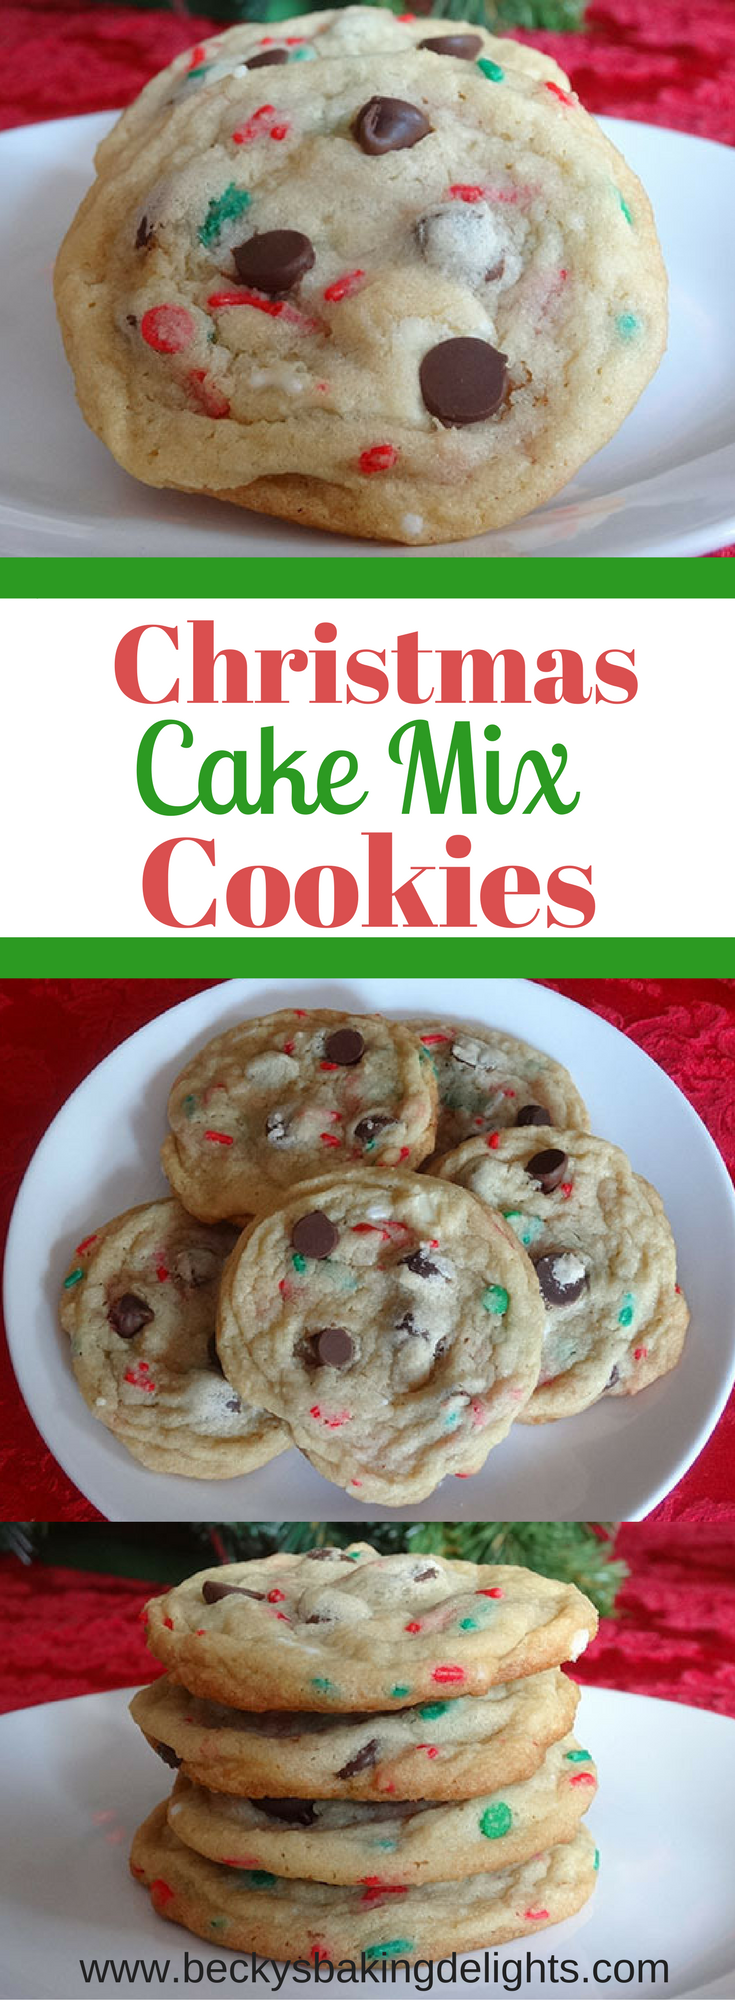 Christmas Cake Mix Cookies Recipe Cake mix cookies